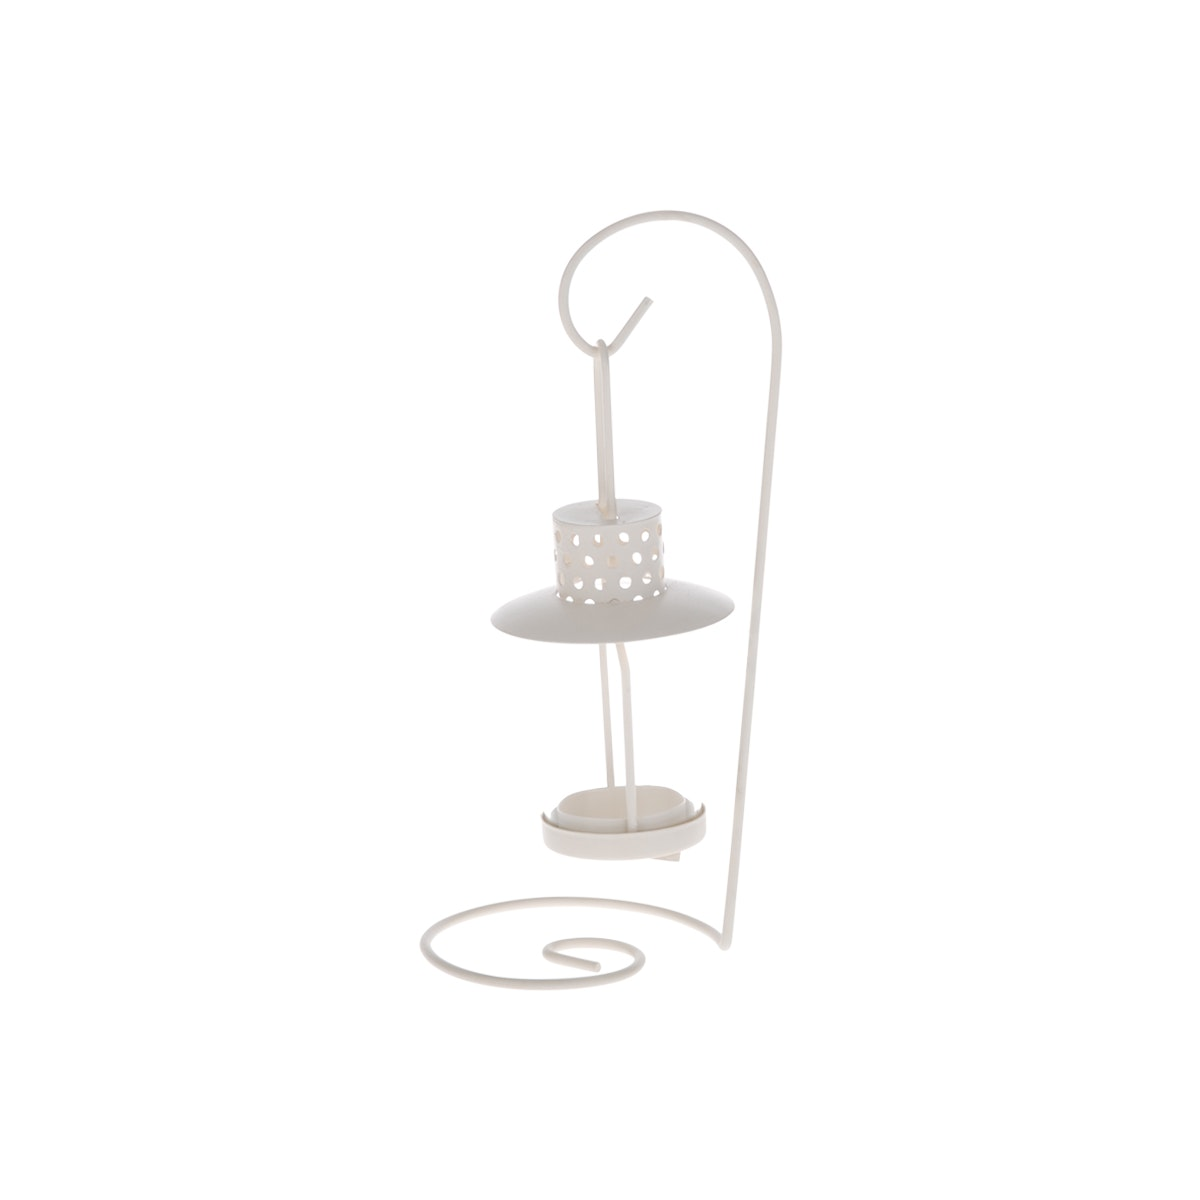 JYSK Candle Holder,Milk White 7317-D